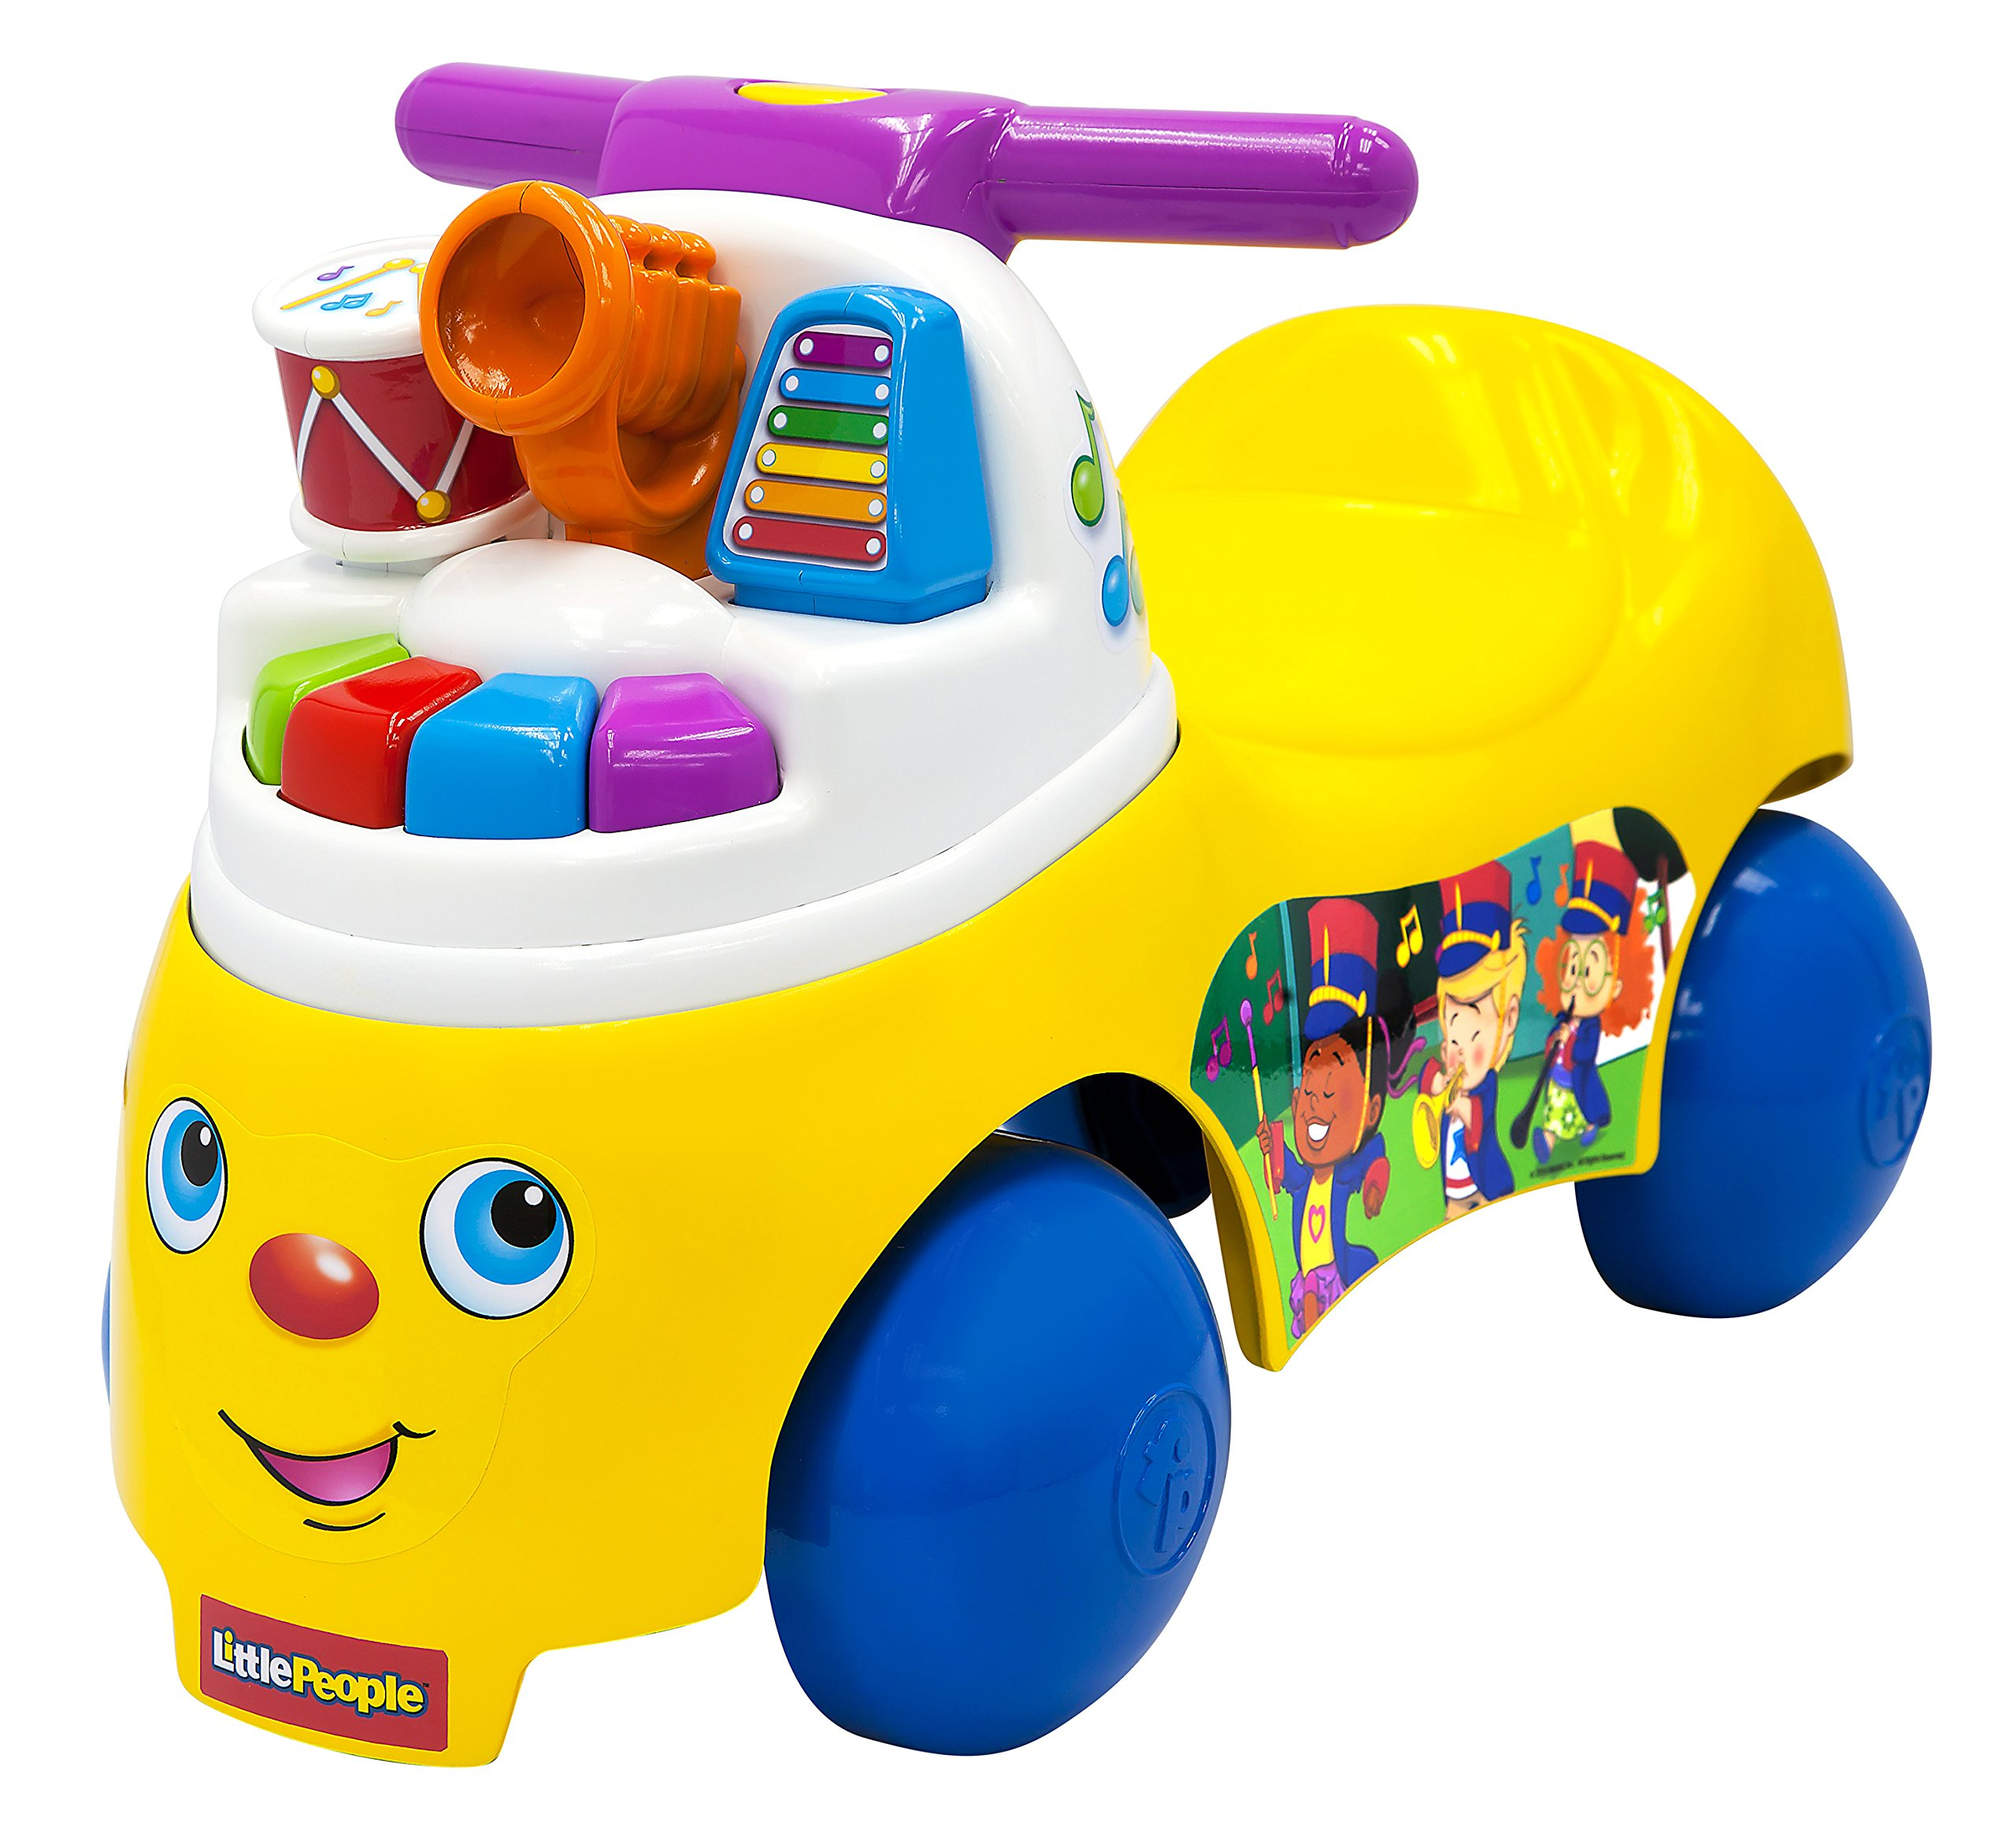 Fisher-Price Little People Melody Maker Ride-On [Amazon Exclusive]